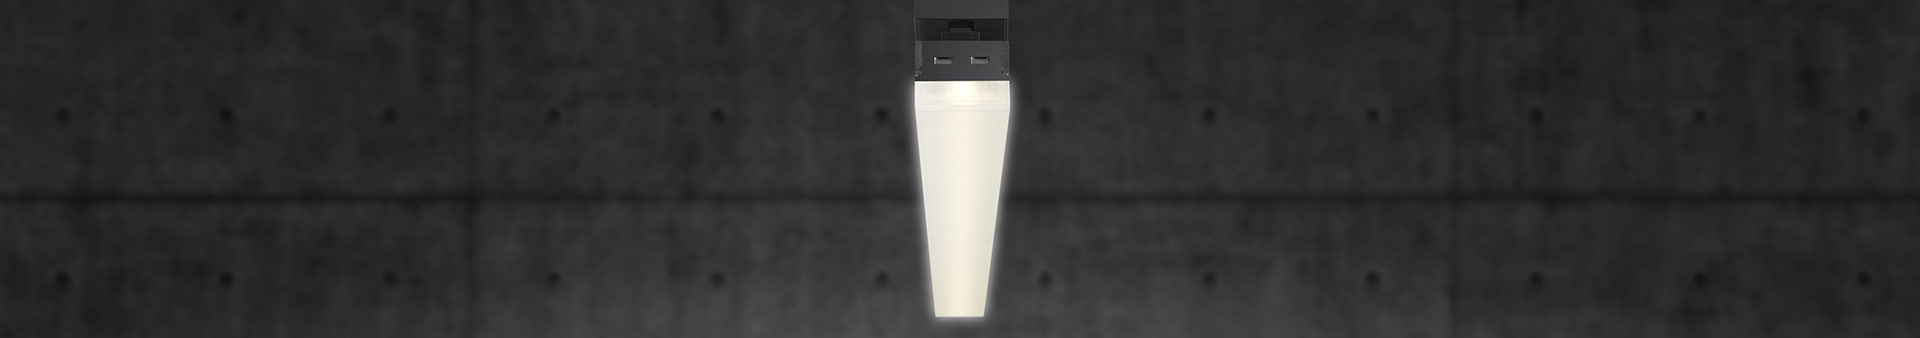 LED luminaire light line 20.2 now available in LED black Luxsystem